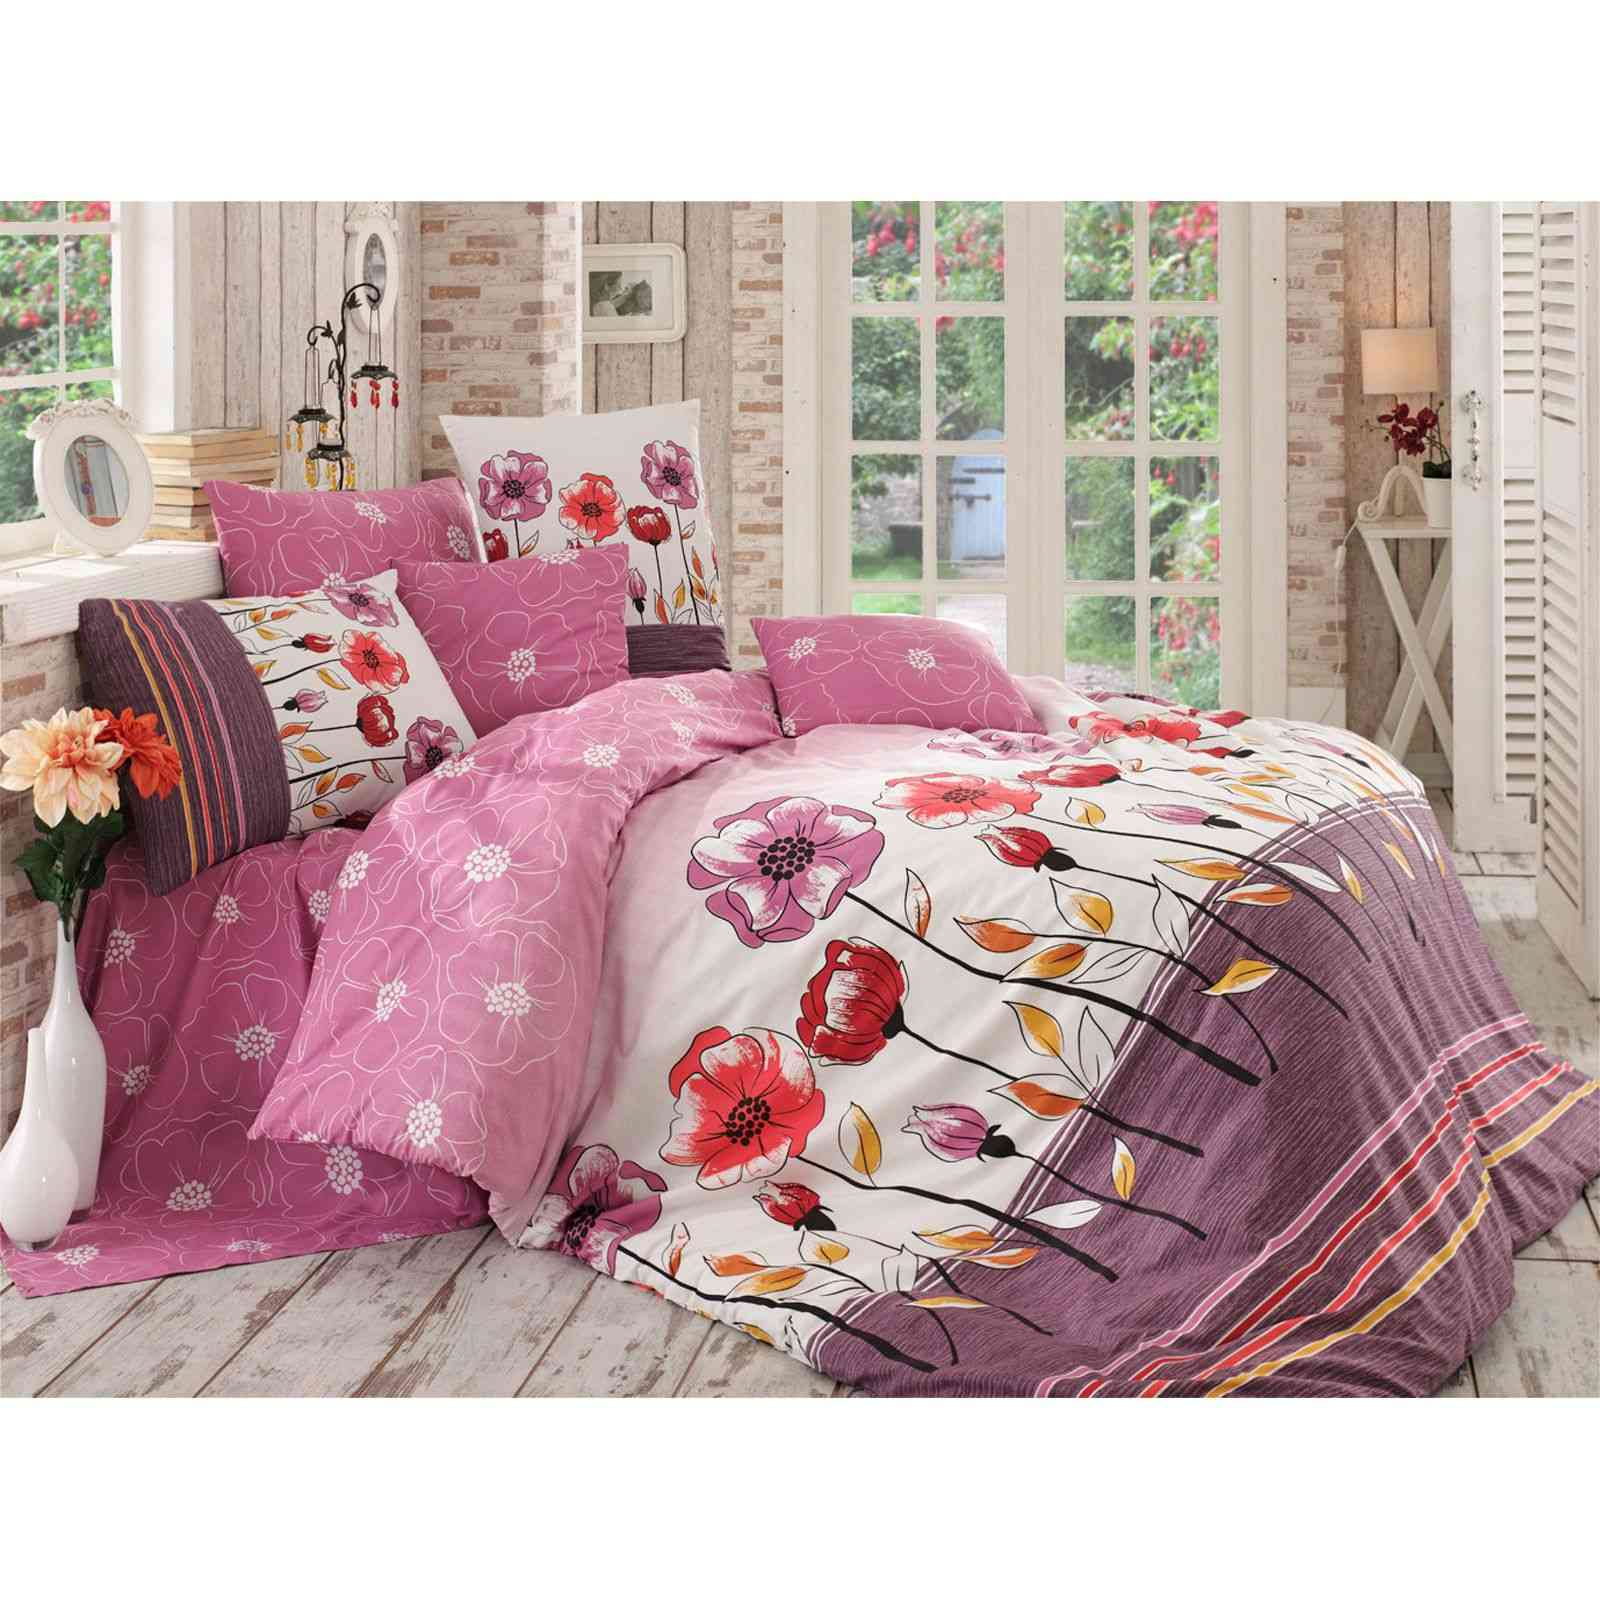 cotton box parure de lit rose brandalley. Black Bedroom Furniture Sets. Home Design Ideas